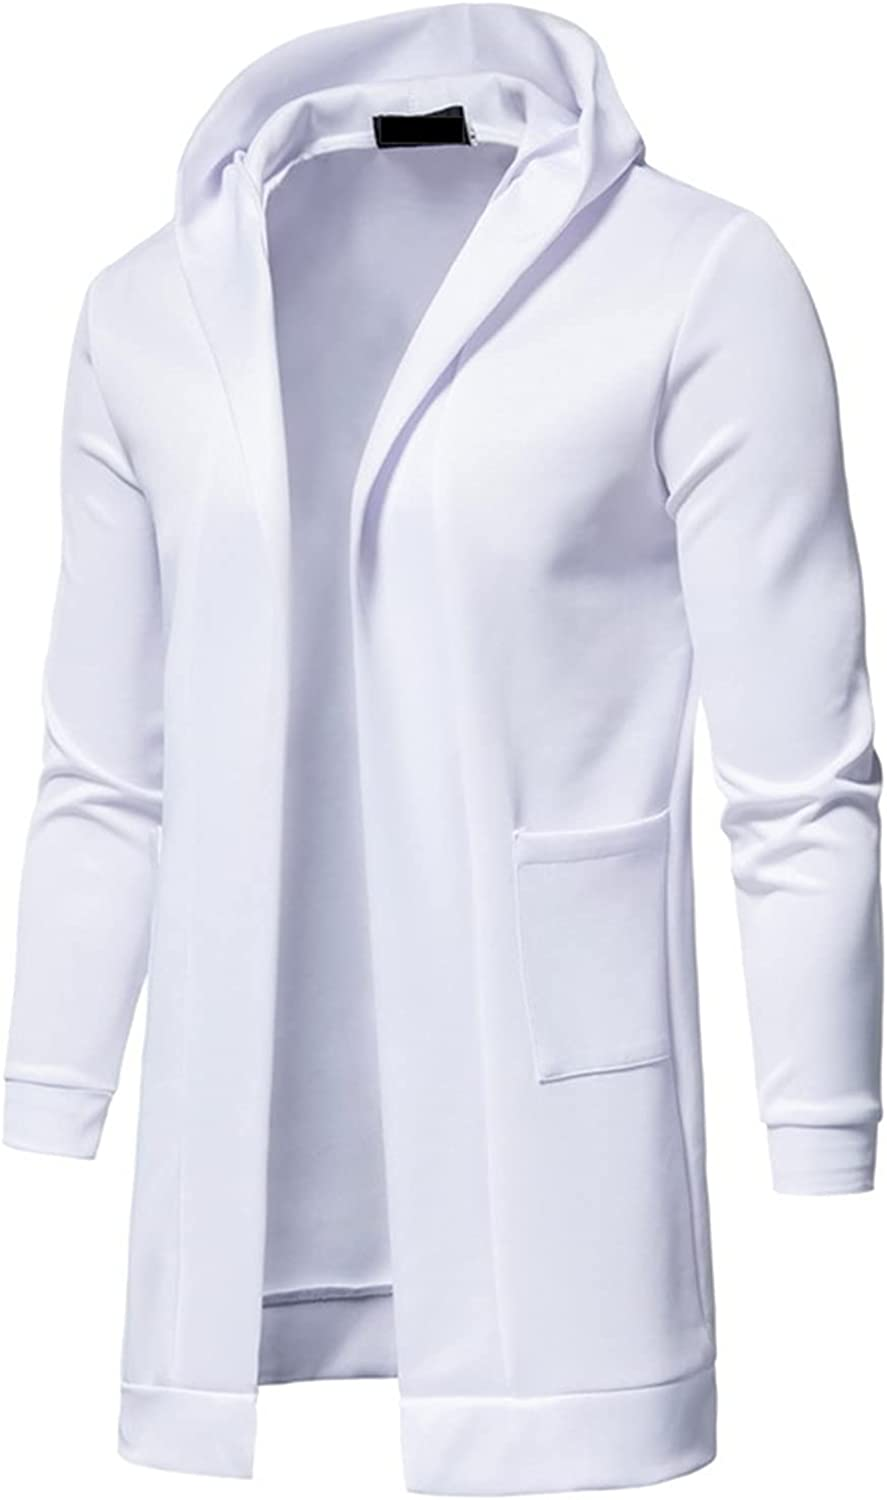 HONGJ Tunic Cardigan Coat for Mens, 2021 Long Sleeve Open Front Casual Windbreaker Fashion Long Outerwear with Pockets